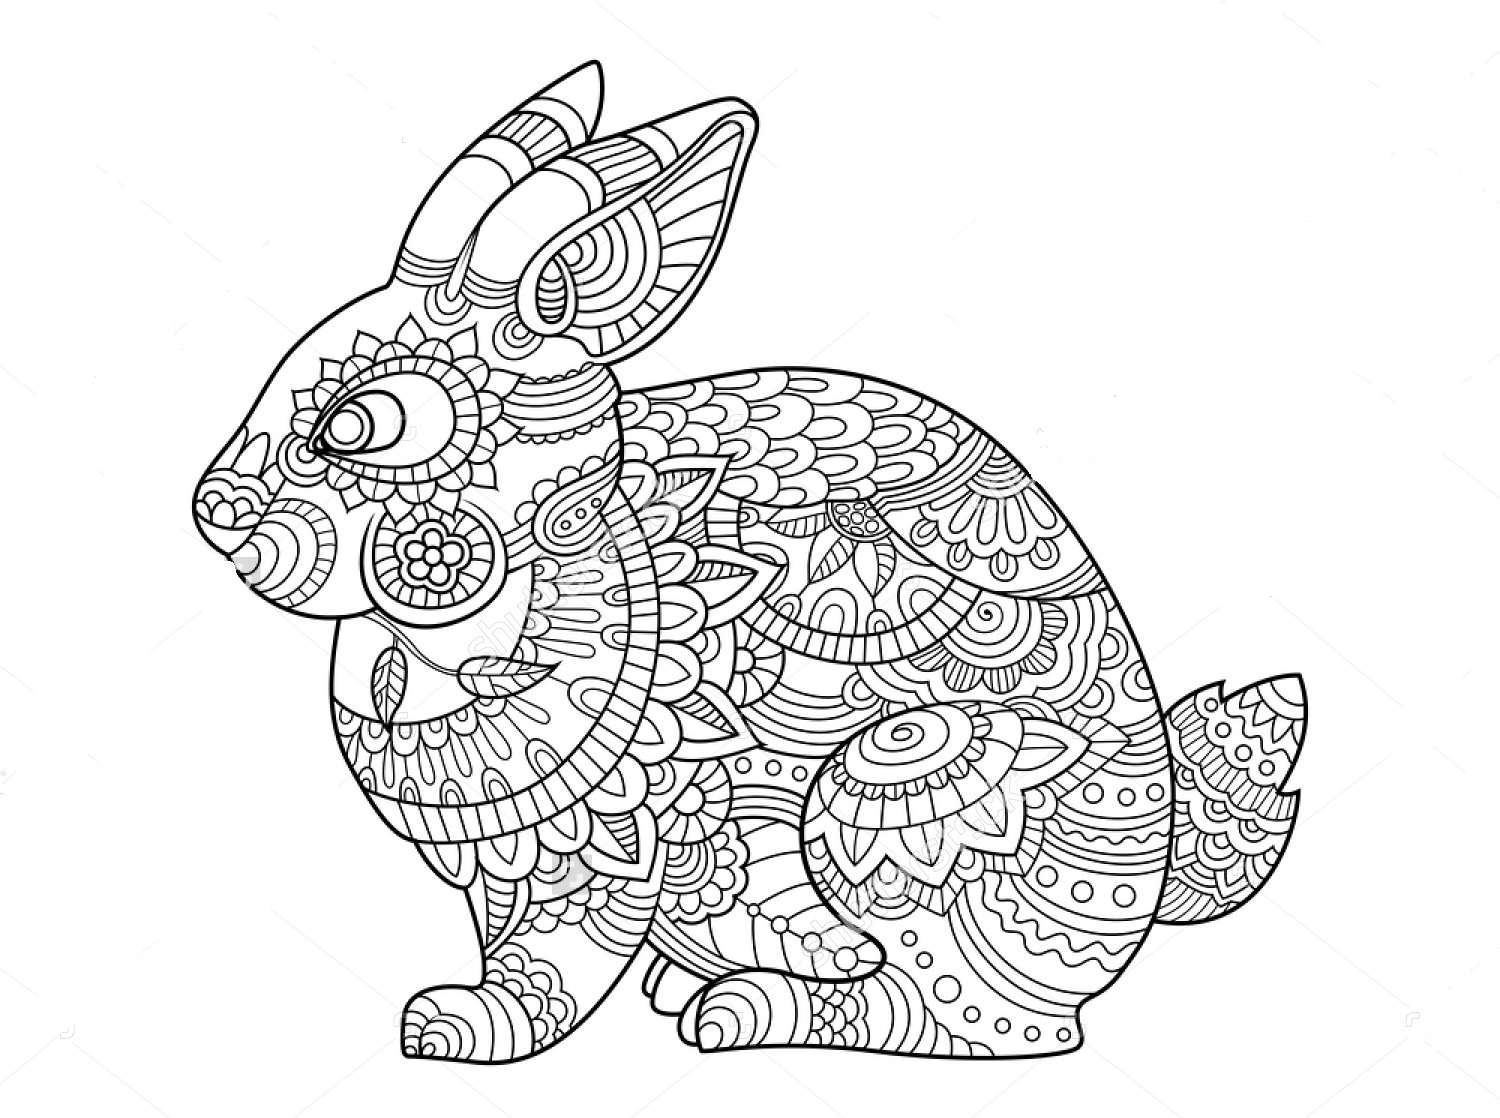 coloring bunnies coloring pages of a rabbit printable free coloring sheets bunnies coloring